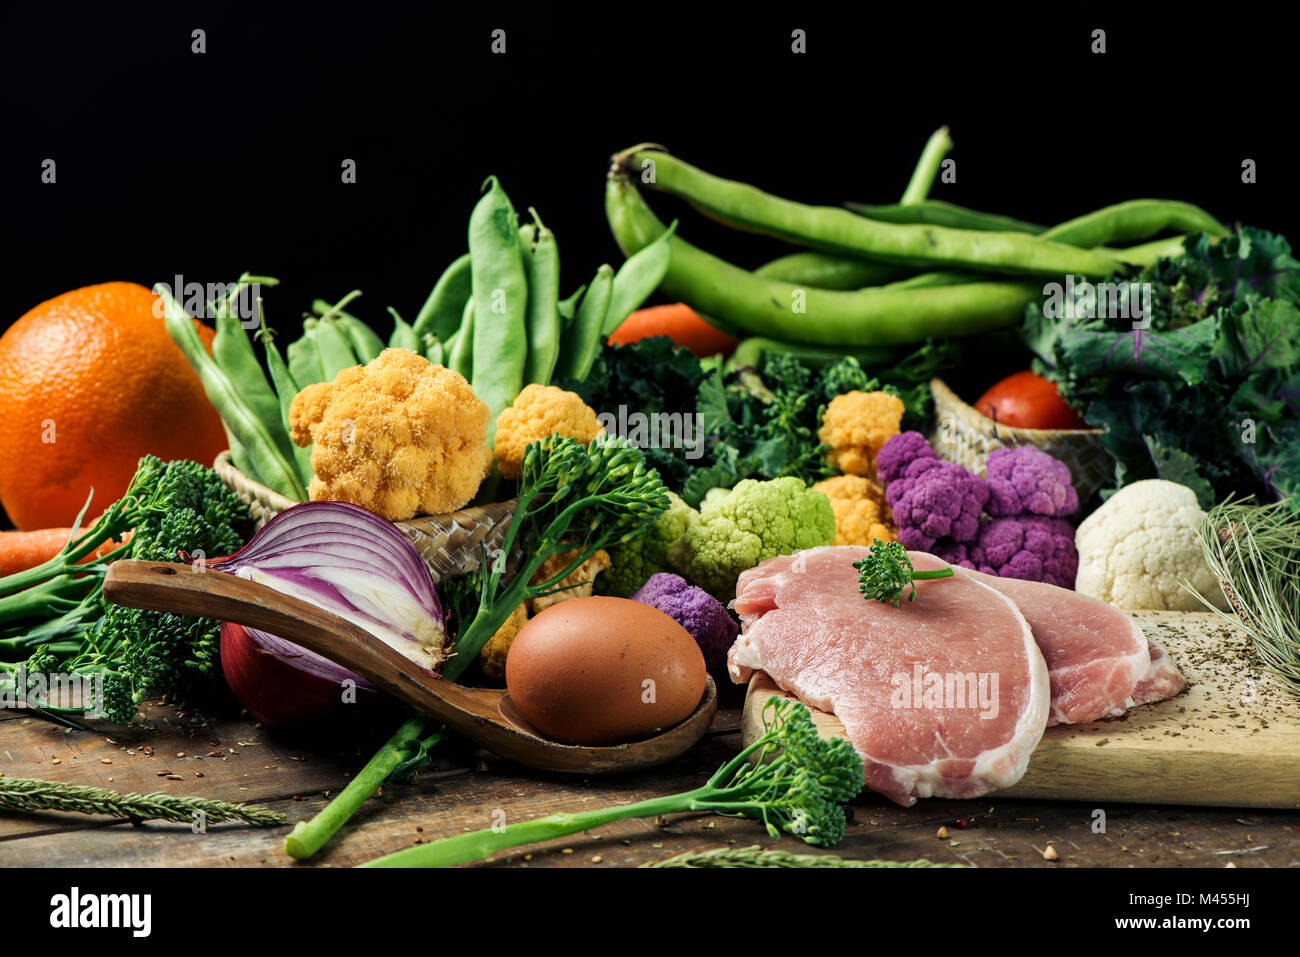 a pile of some fruit and some different raw vegetables, such as cauliflower of different colors, broccolini or french - Stock Image